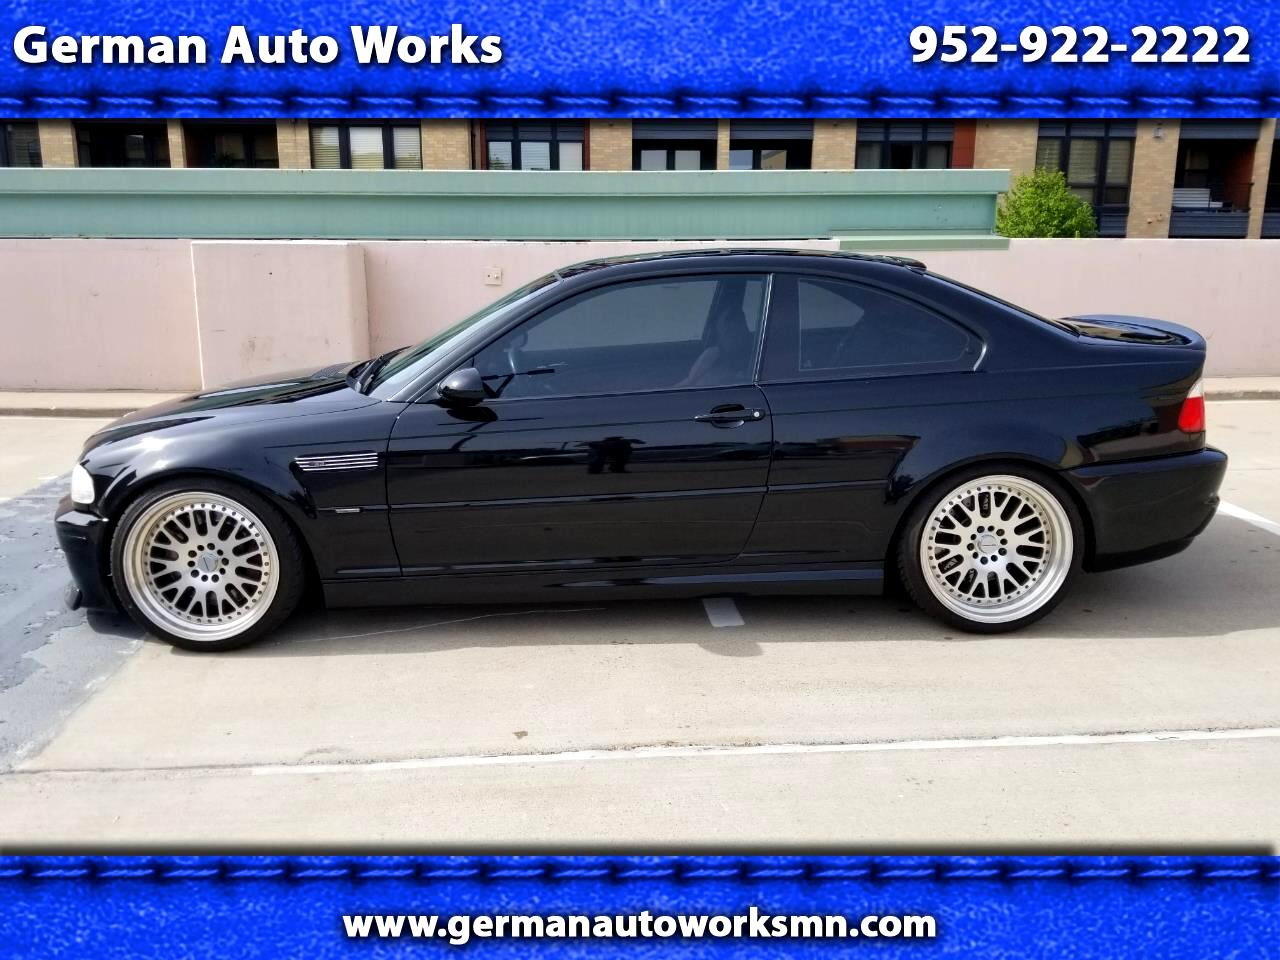 2002 BMW 3 Series M3 2dr Cpe